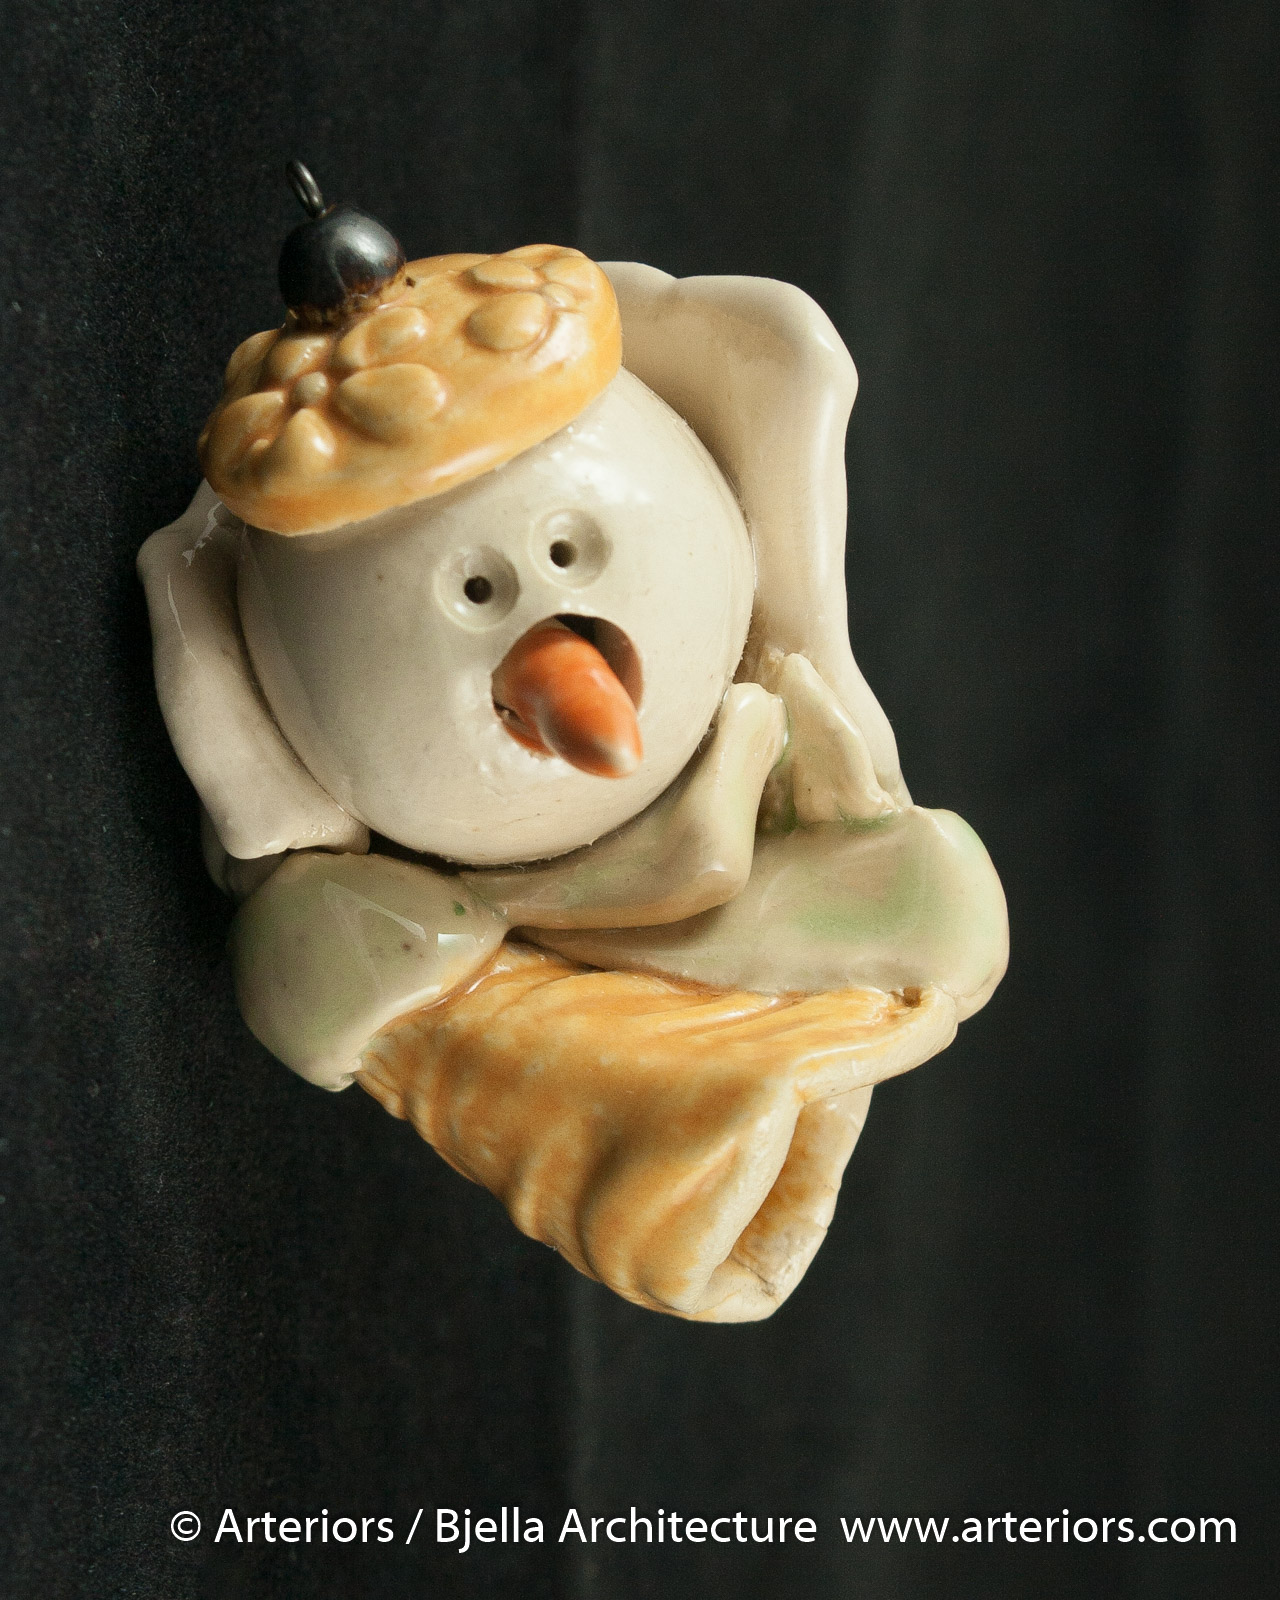 Bjella Snowman Ornament - Day 9 - Cutesy-35